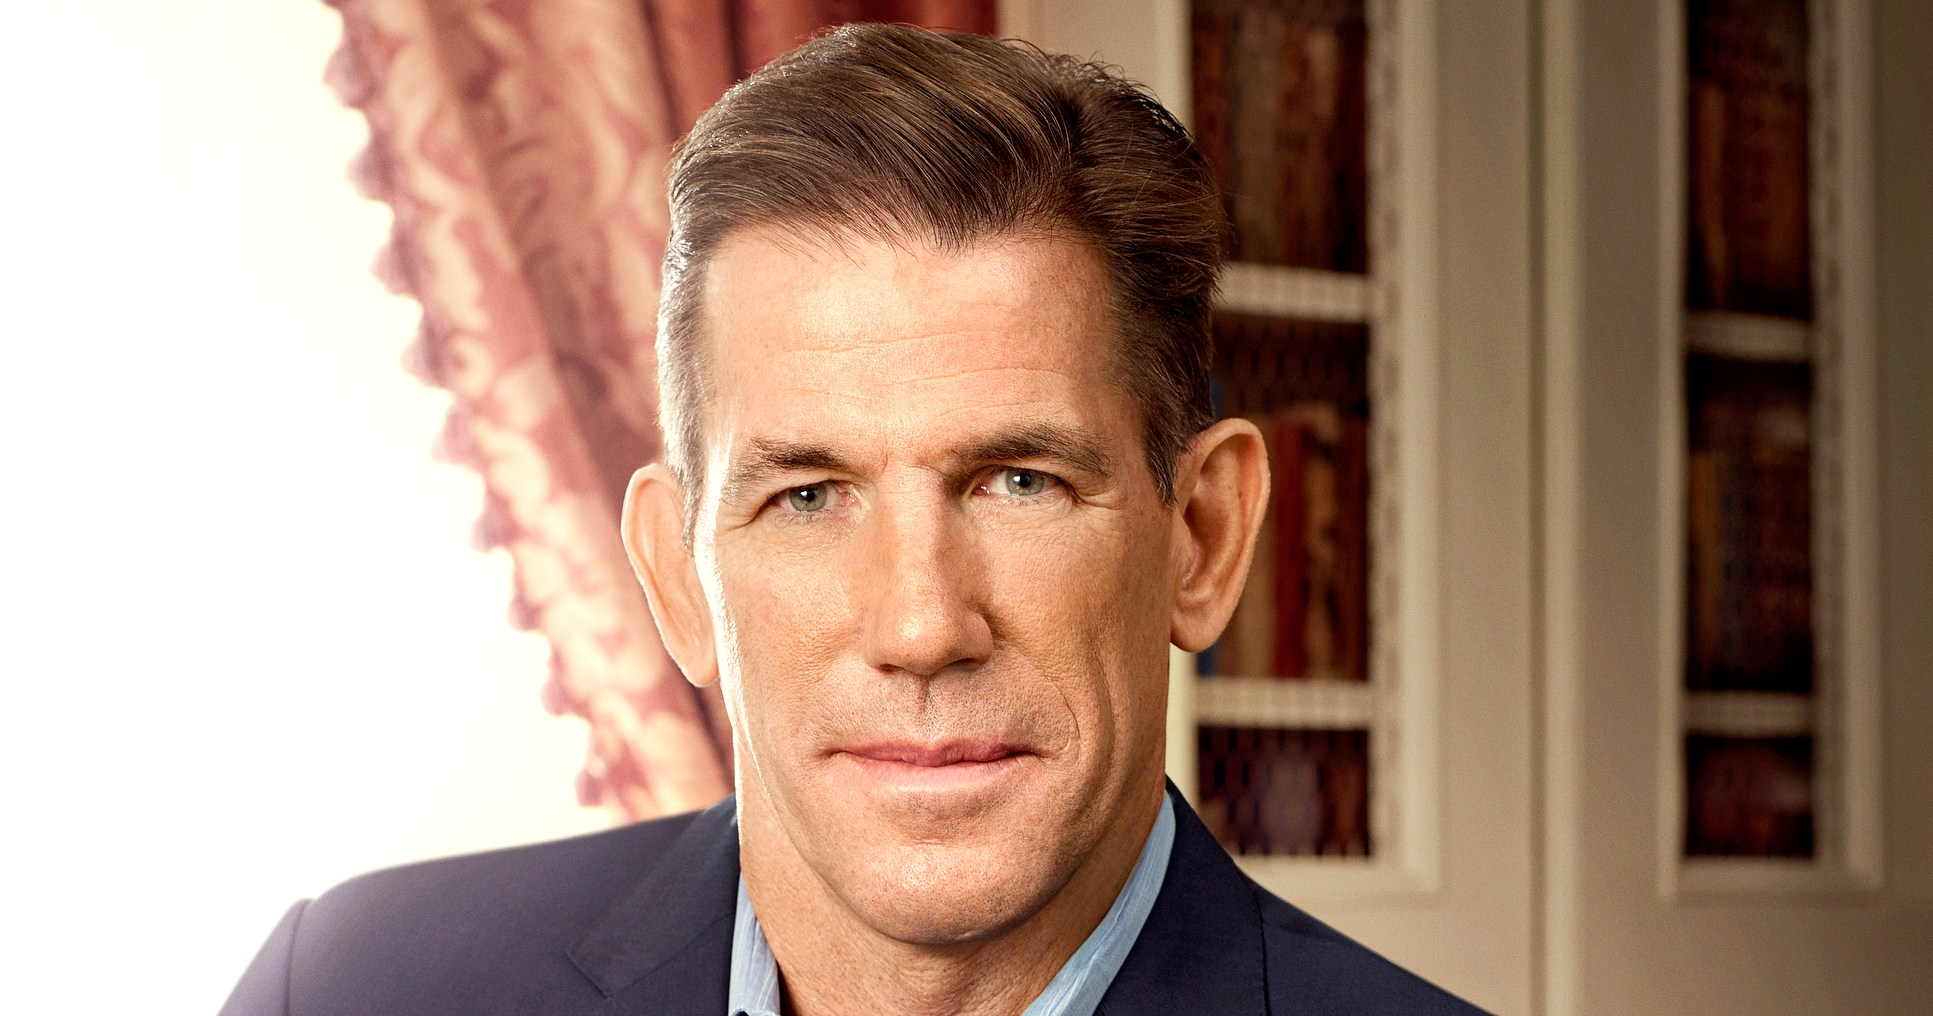 Thomas Ravenel Spends Time With Son Amid Custody Battle With Ex